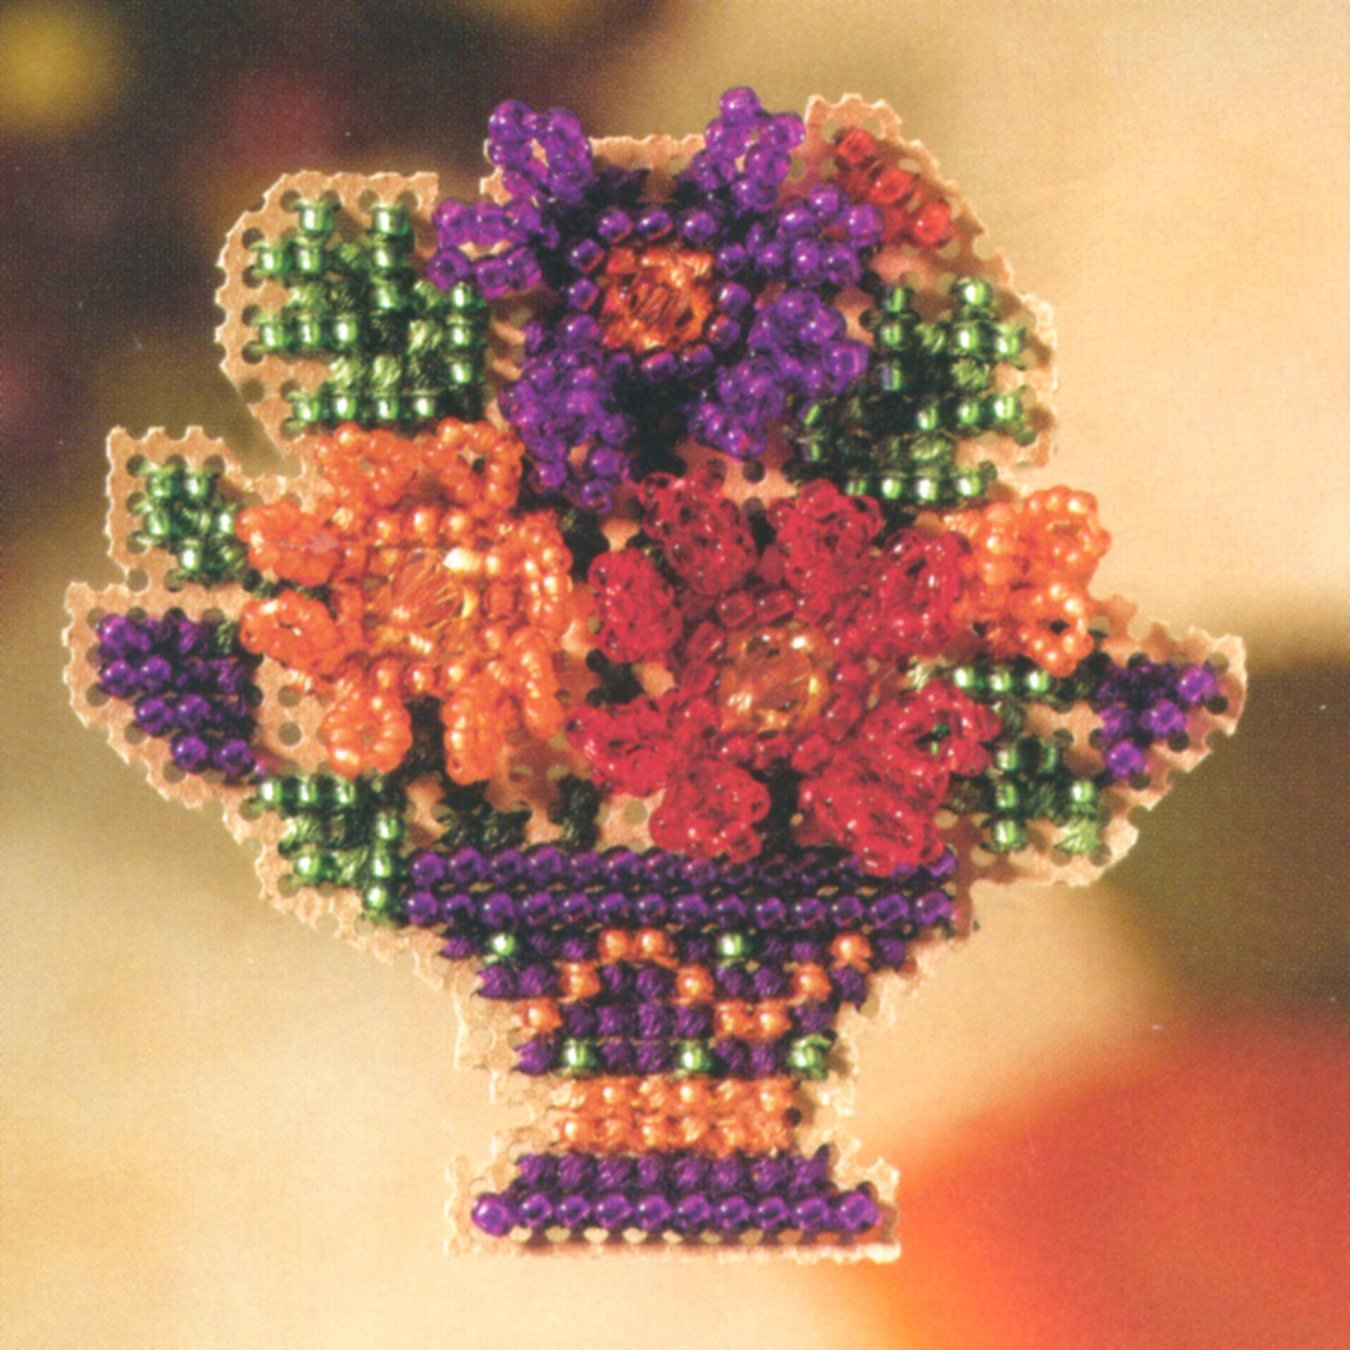 Mum Bouquet Beaded Counted Cross Stitch Ornament Kit Mill Hill 2007 Autumn Harvest MH18-7202 by Mill Hill B003OOD67I